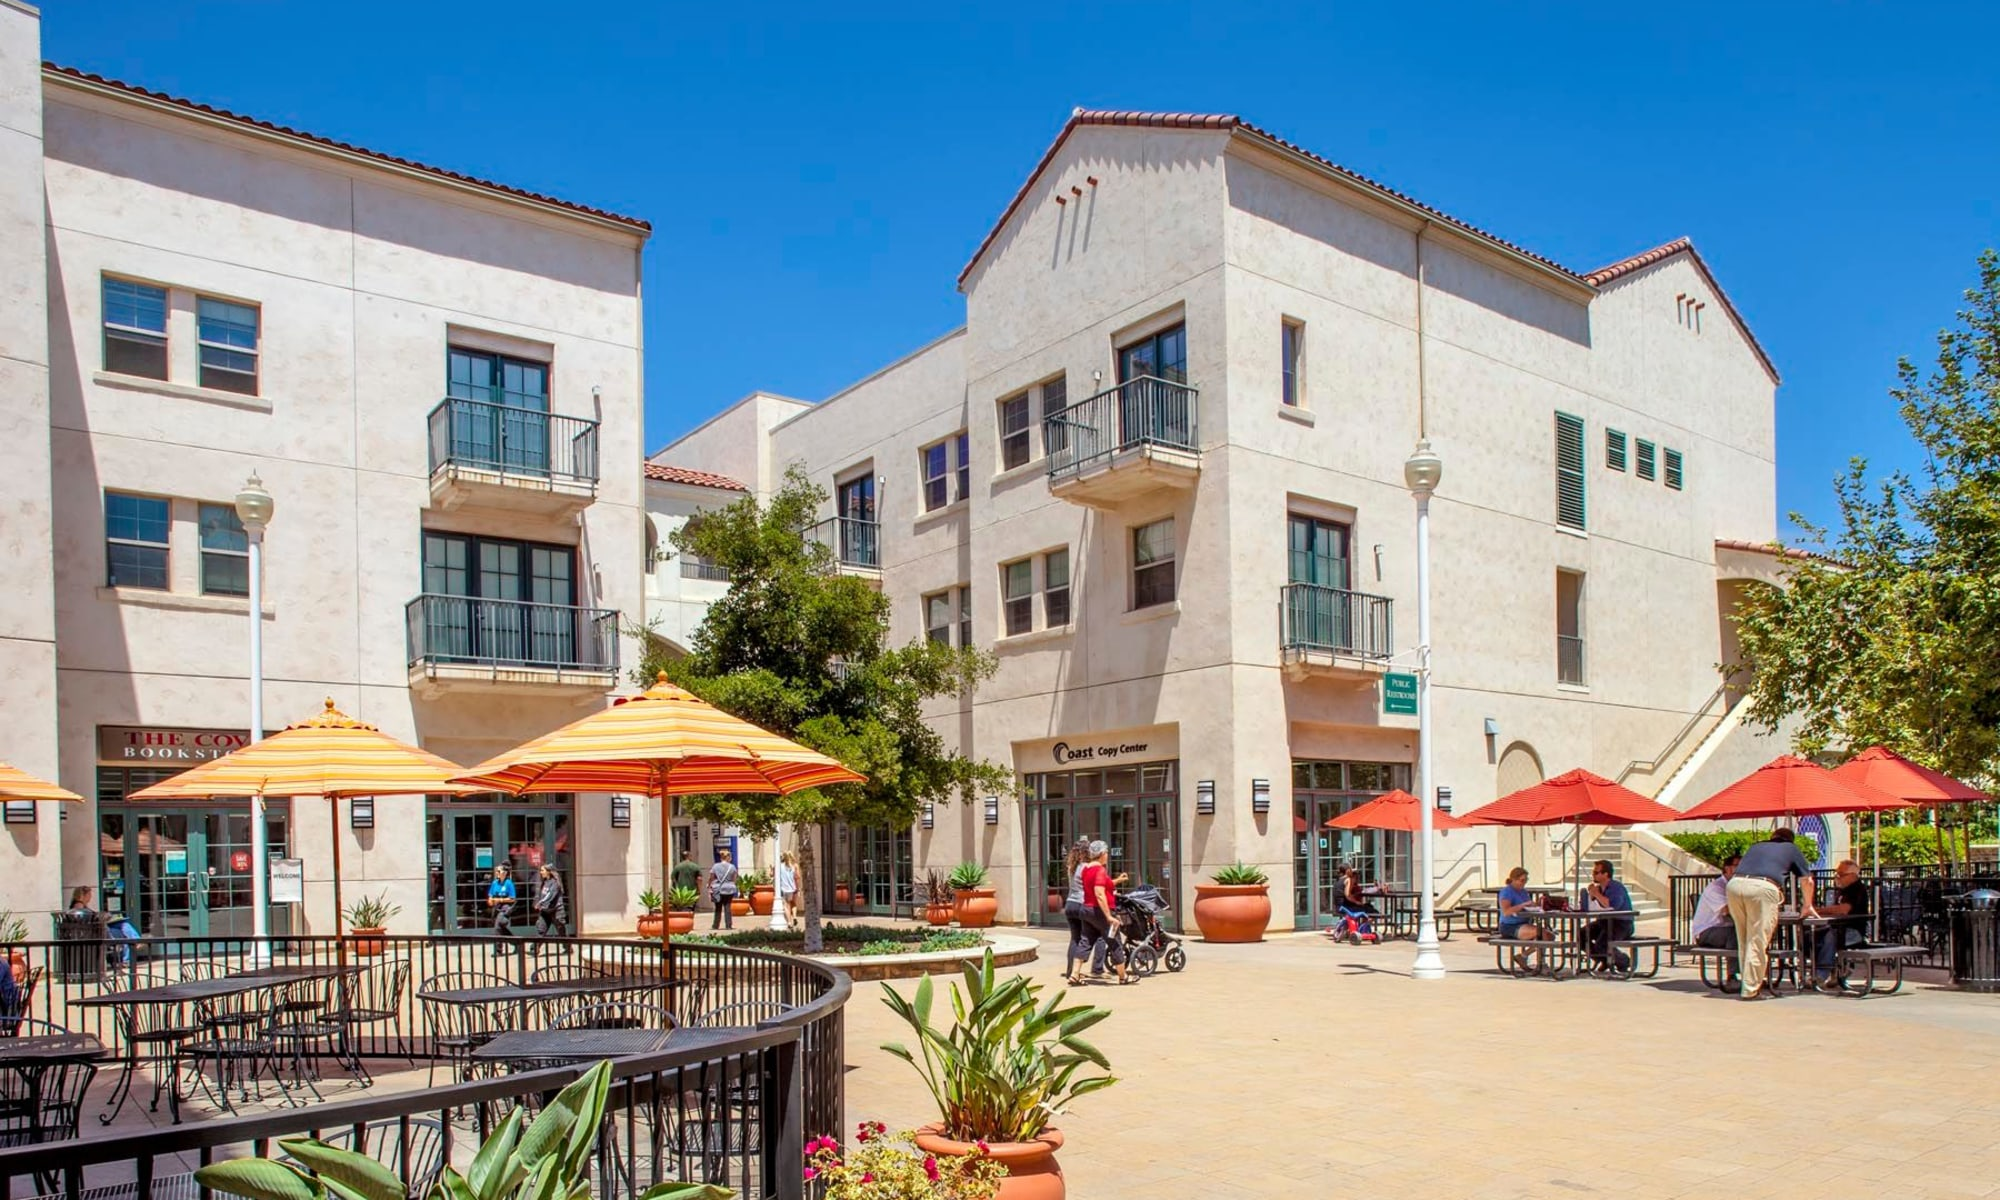 Beautiful courtyard area with shaded seating outside the retail shops and restaurants at Mission Hills in Camarillo, California